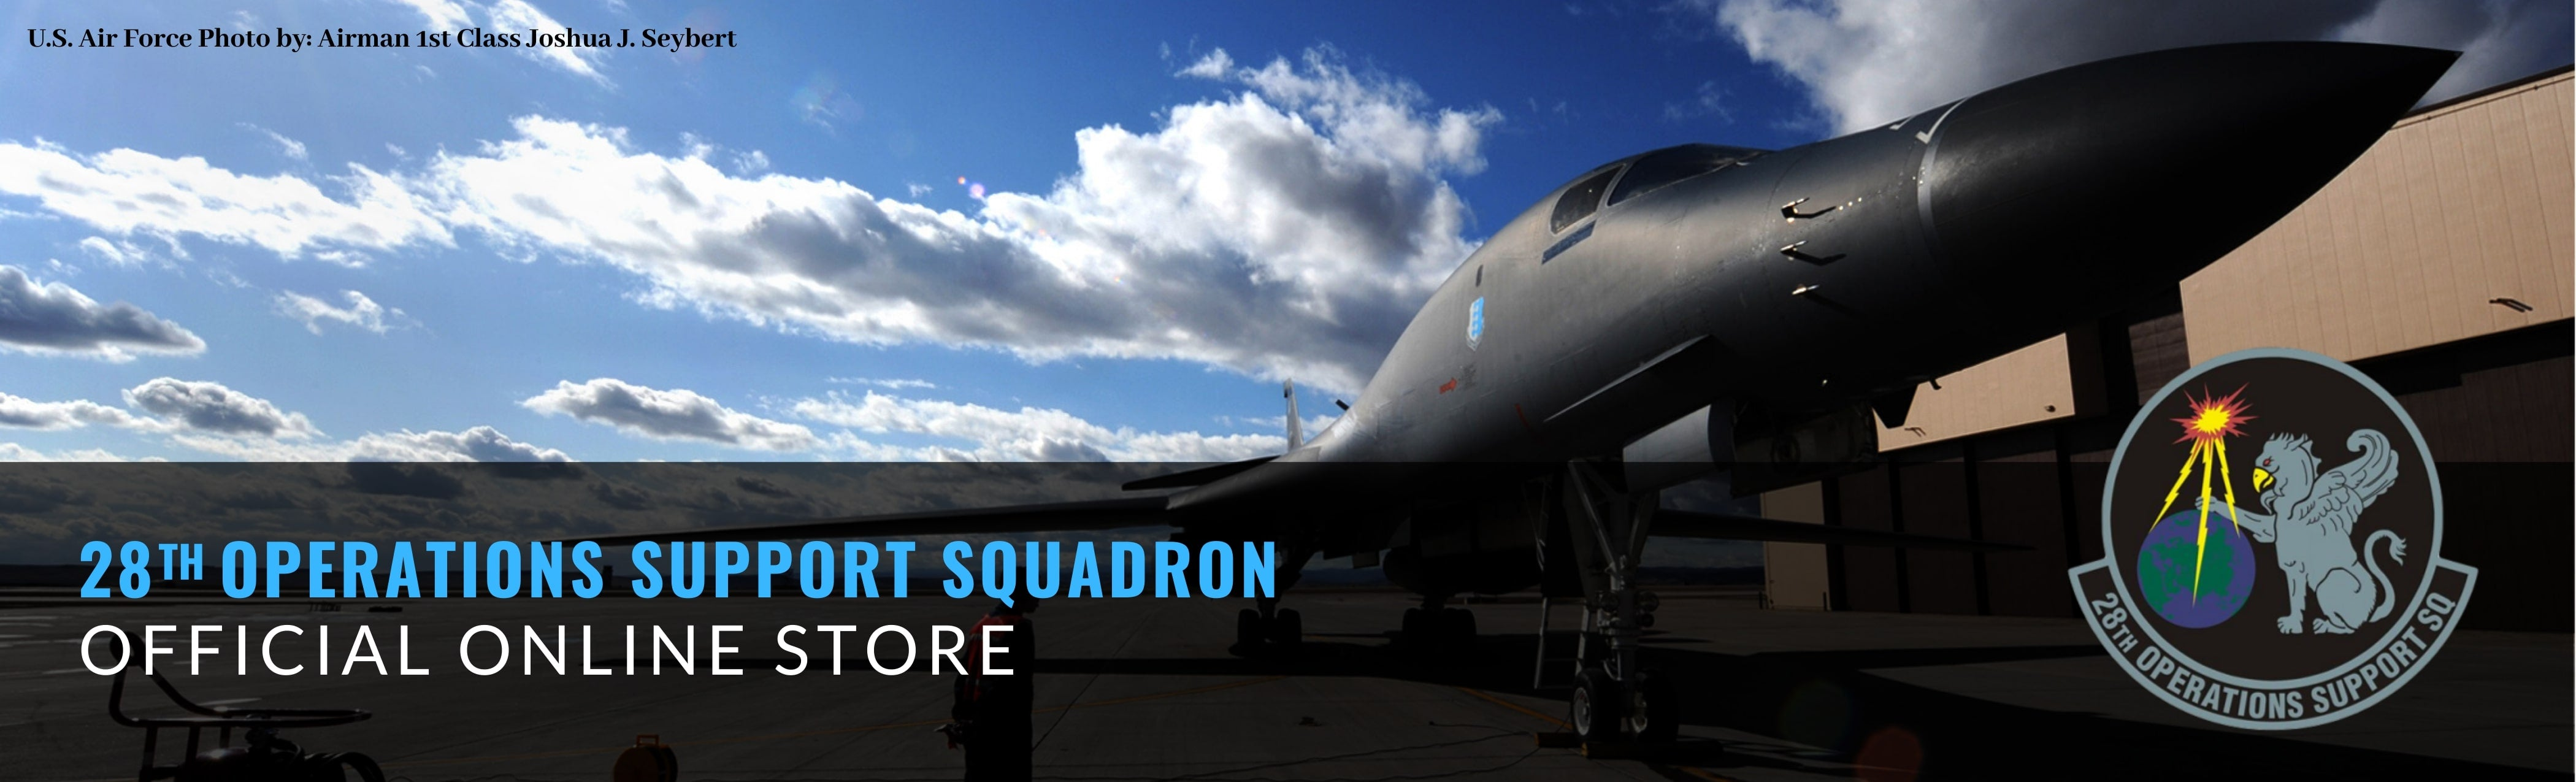 28th Operations Support Squadron